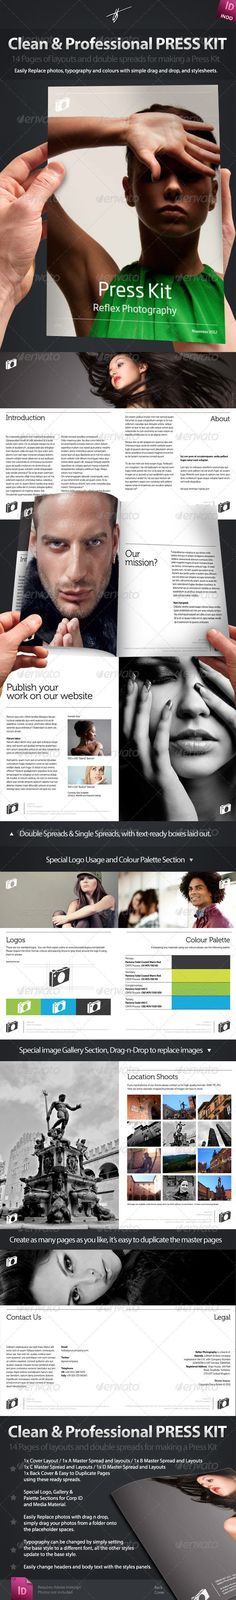 Press-Kit Style Brochure Design  #GraphicRiver         I've called this Indesign pack a Press Kit, but it could be a Brochure or Media Kit or whatever. It's dead simple to change and make your own. Let me explain what's in the kit:  	 Clean & Professional Press Kit / Brochure / Magazine / Media Kit  	 I called it a PressKit because I threw in a couple of layouts for Logo usage and colour palettes, but this Indesign Brochure /